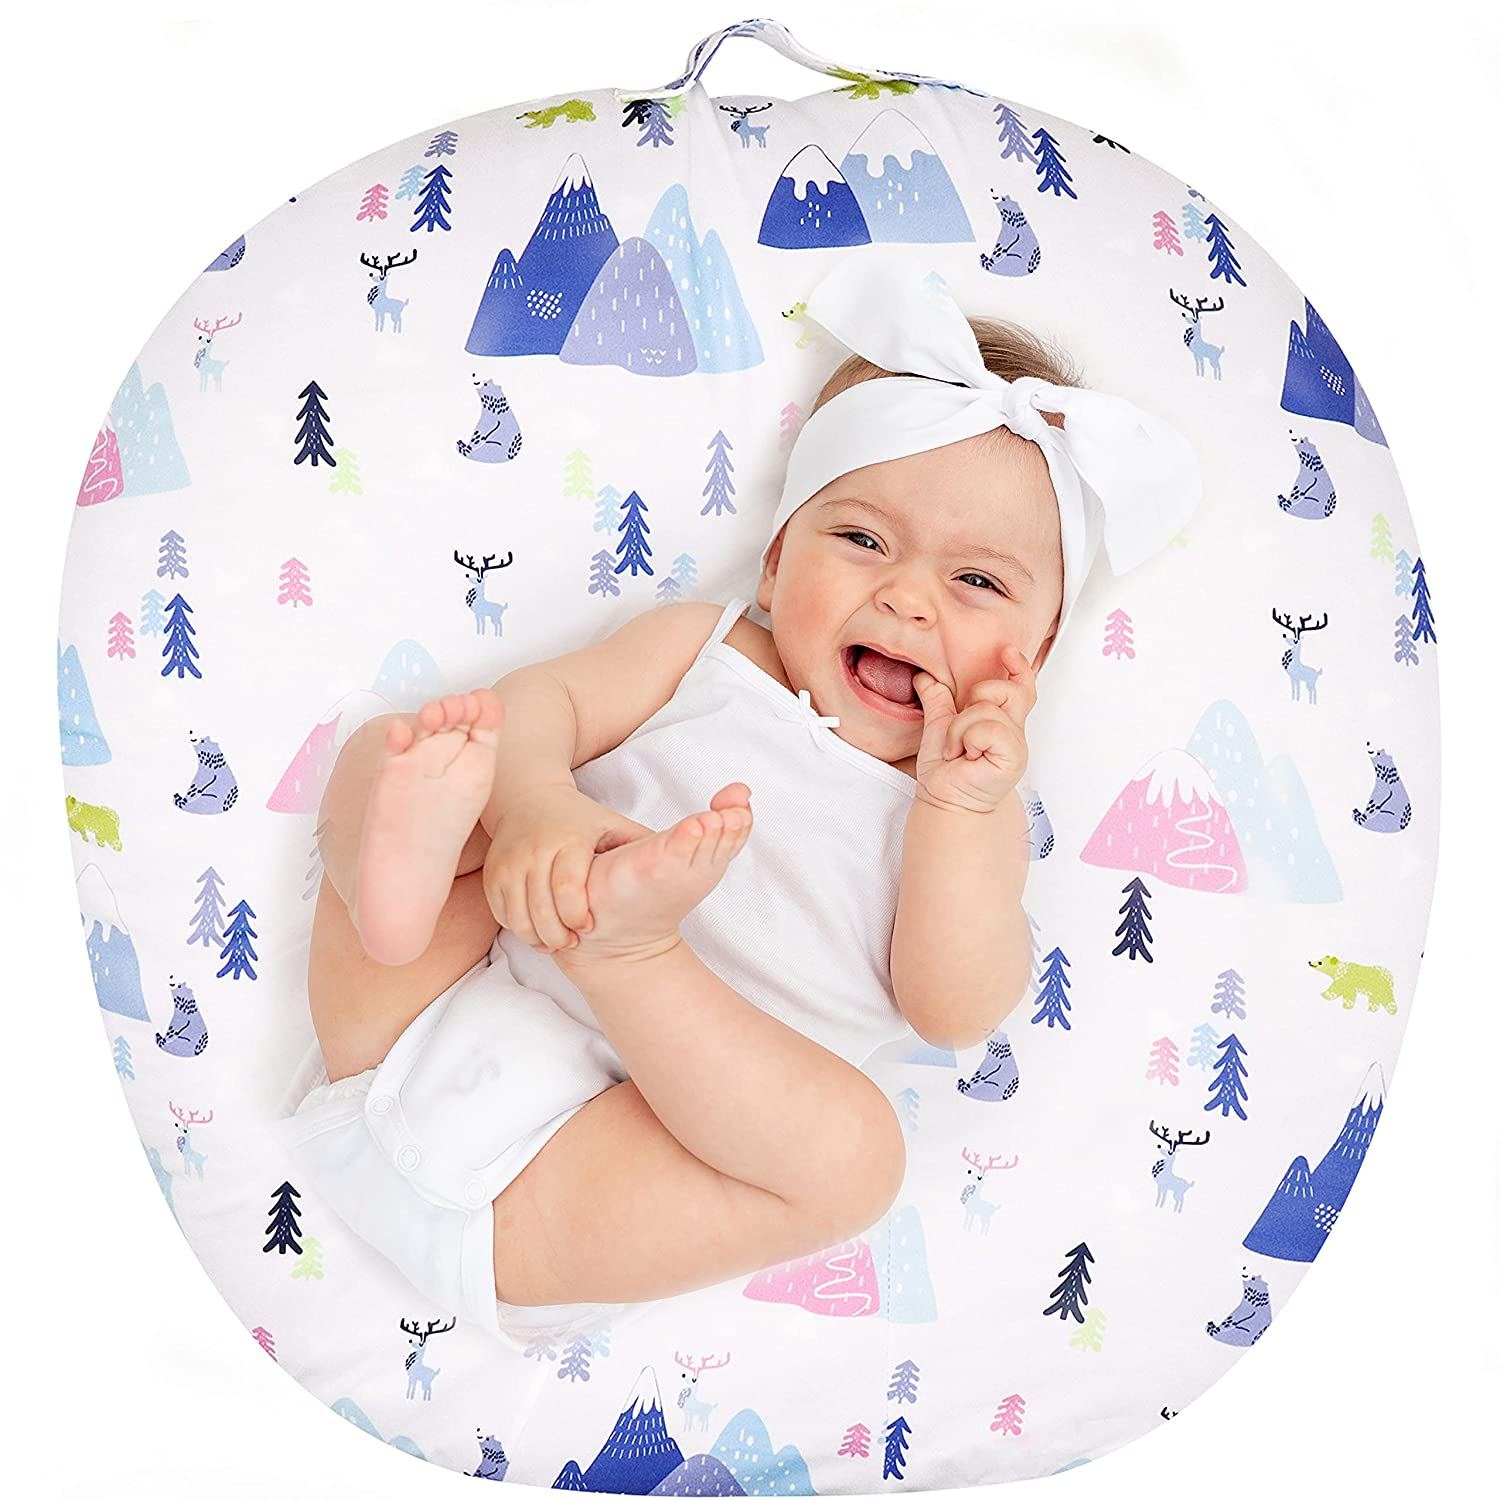 GFU Newborn Lounger Cover for Boys Girls, Removable Lounger Pillow Cover, Soft Snug Fitted Baby Lounger Slipcover, Colorful Forest(Lounger Pillow Not Included)